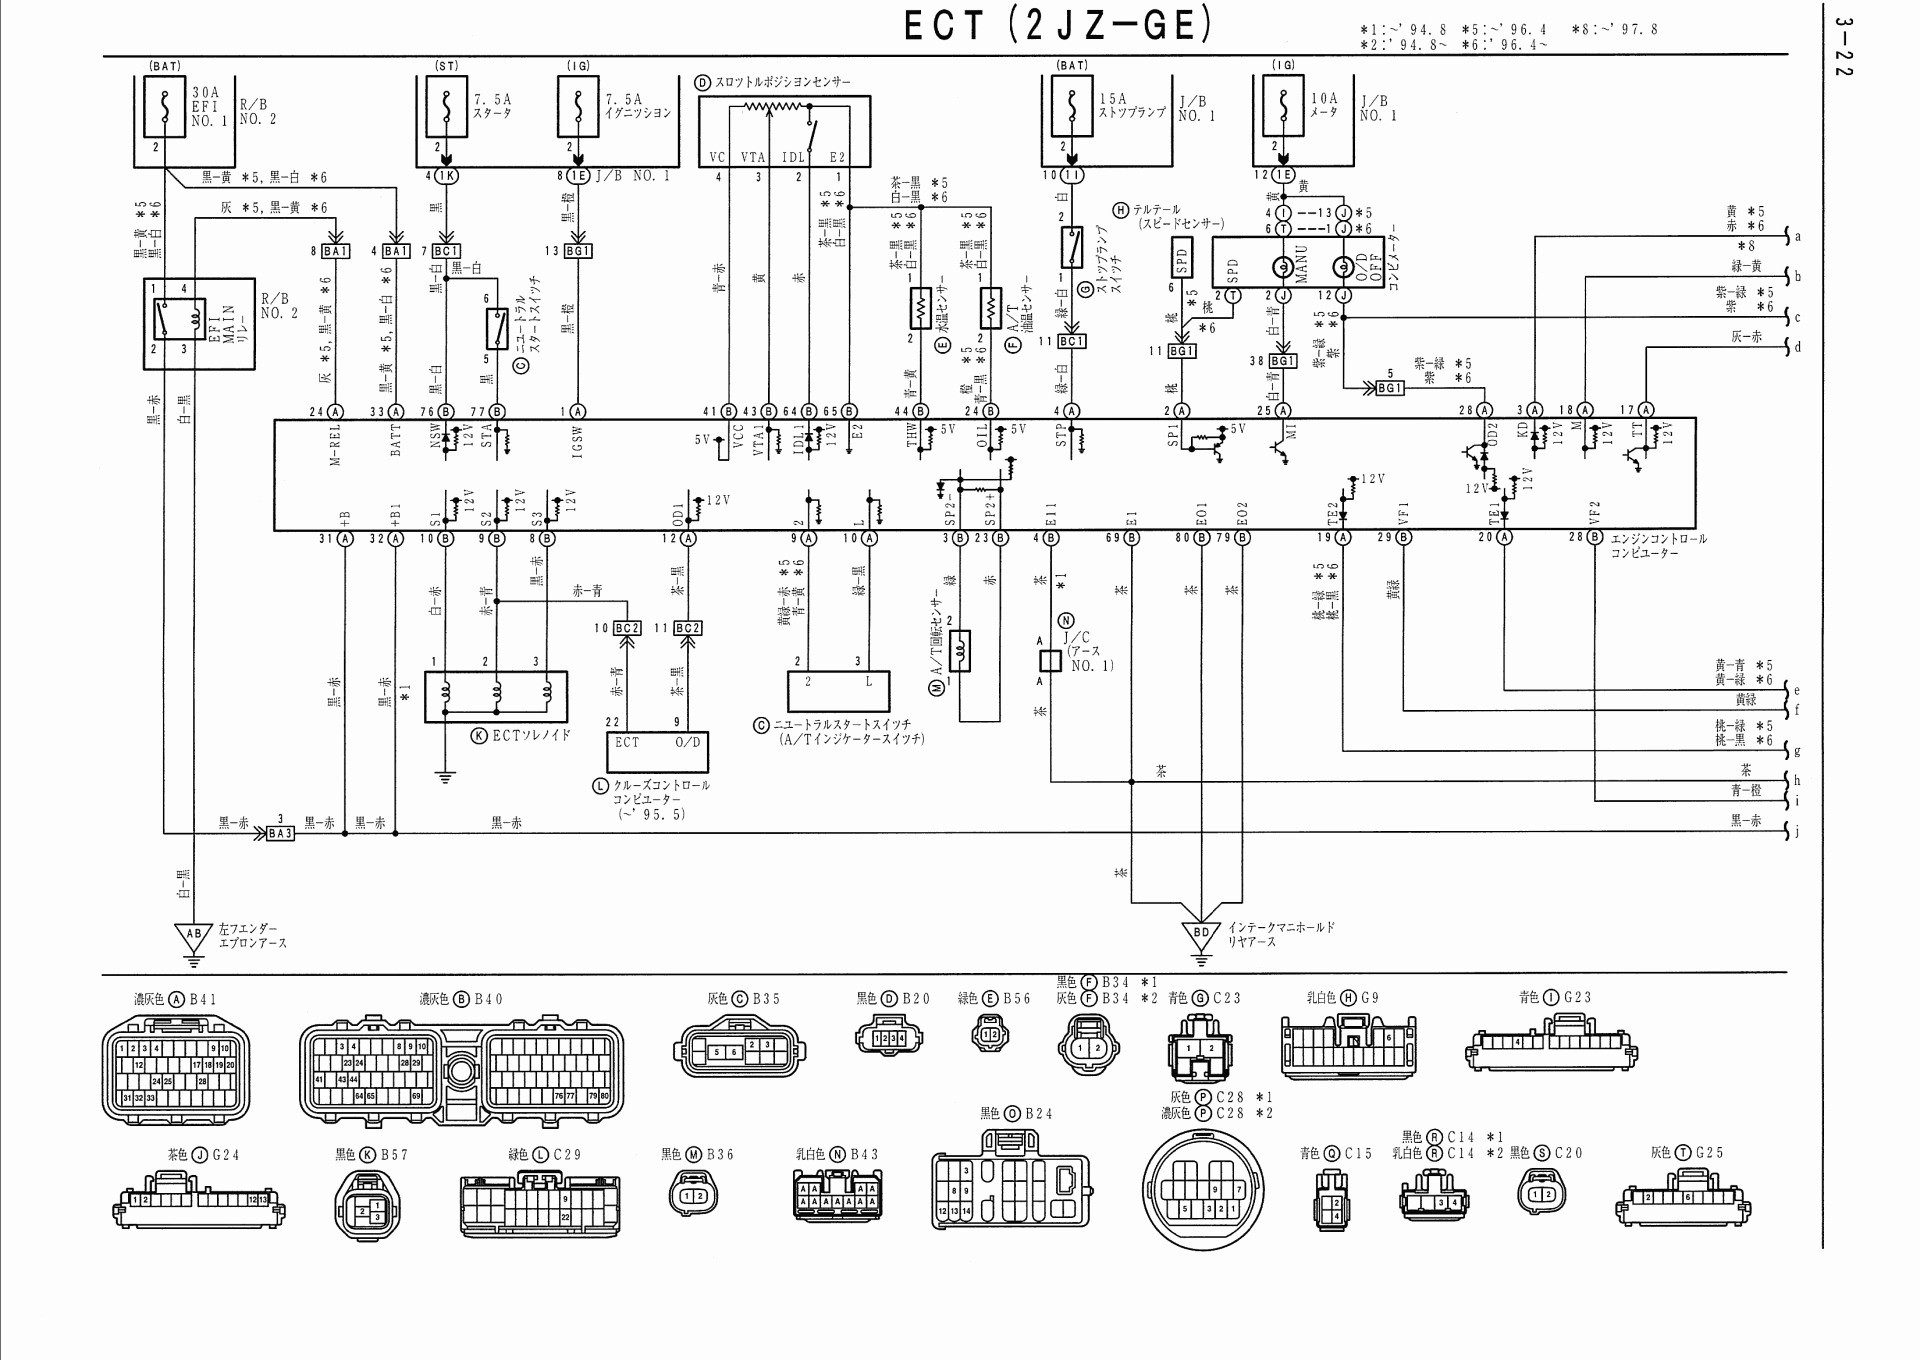 bmw m42 wiring diagram information of wiring diagram u2022 rh infowiring today bmw e36 m42 wiring diagram bmw m42 engine wiring diagram